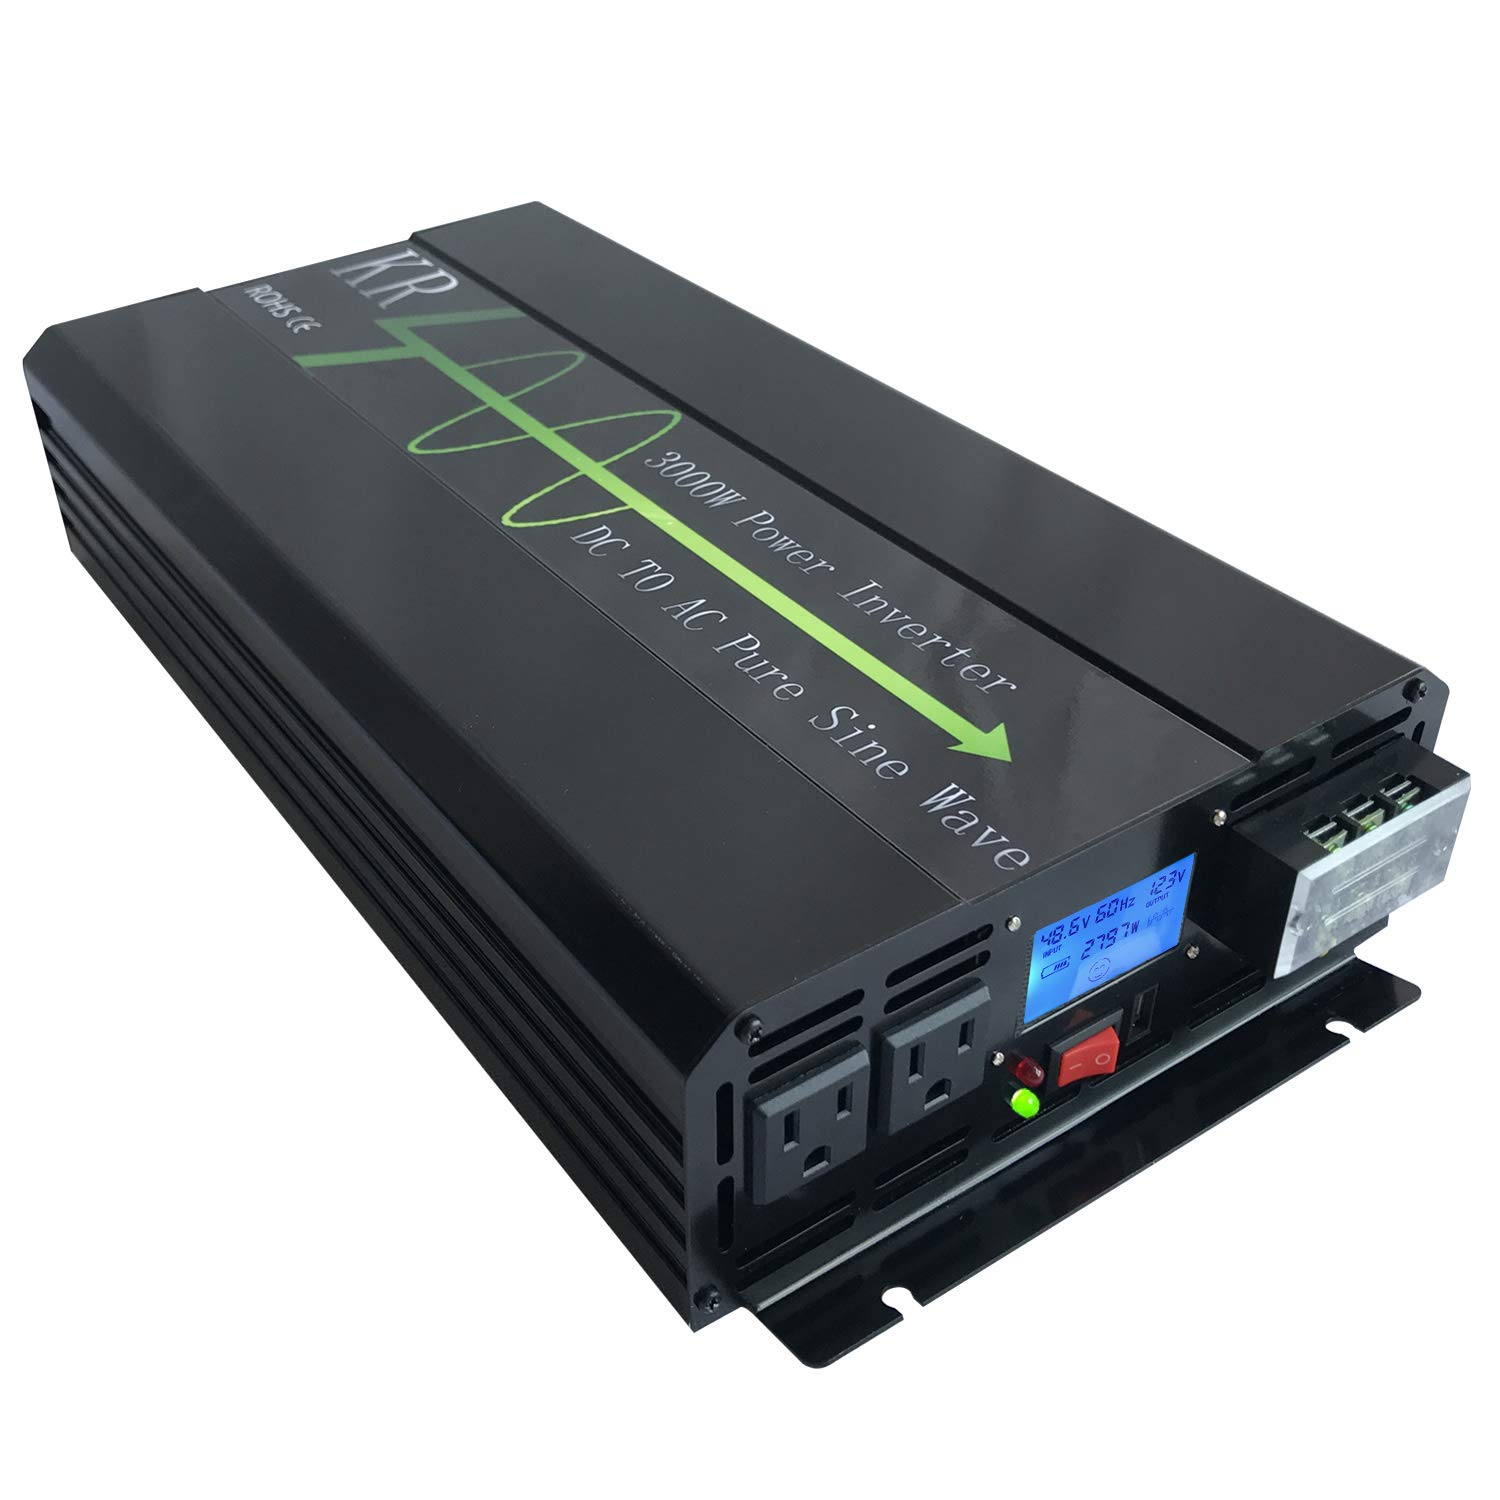 KRXNY 3000W Pure Sine Wave Power Inverter Peak 6000W 48V DC to 110V 120V AC 60HZ for Car RV Use or Home Solar System with LCD Display by KRXNY